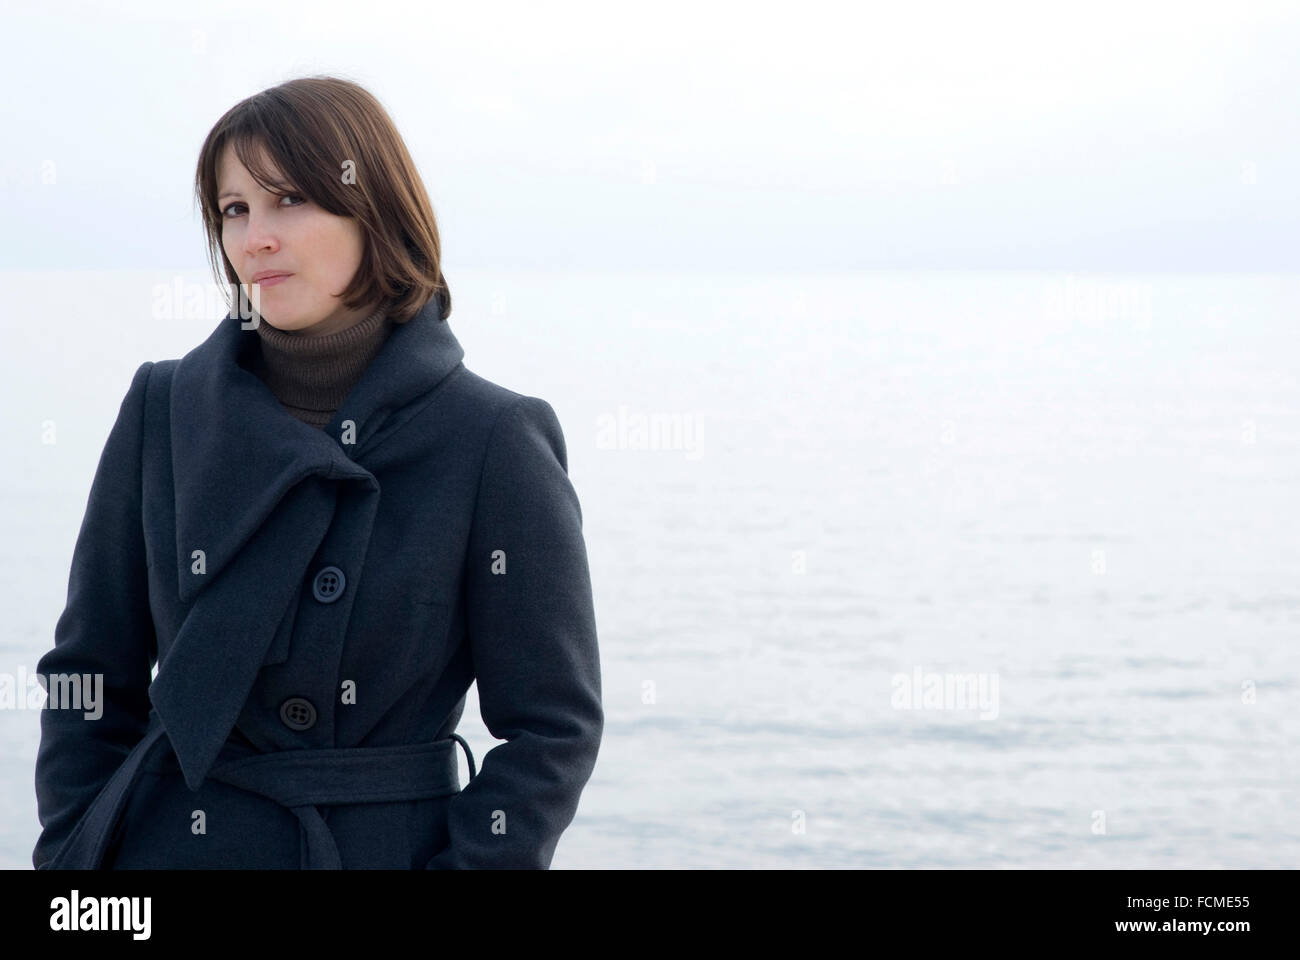 Woman, outdoors - Stock Image